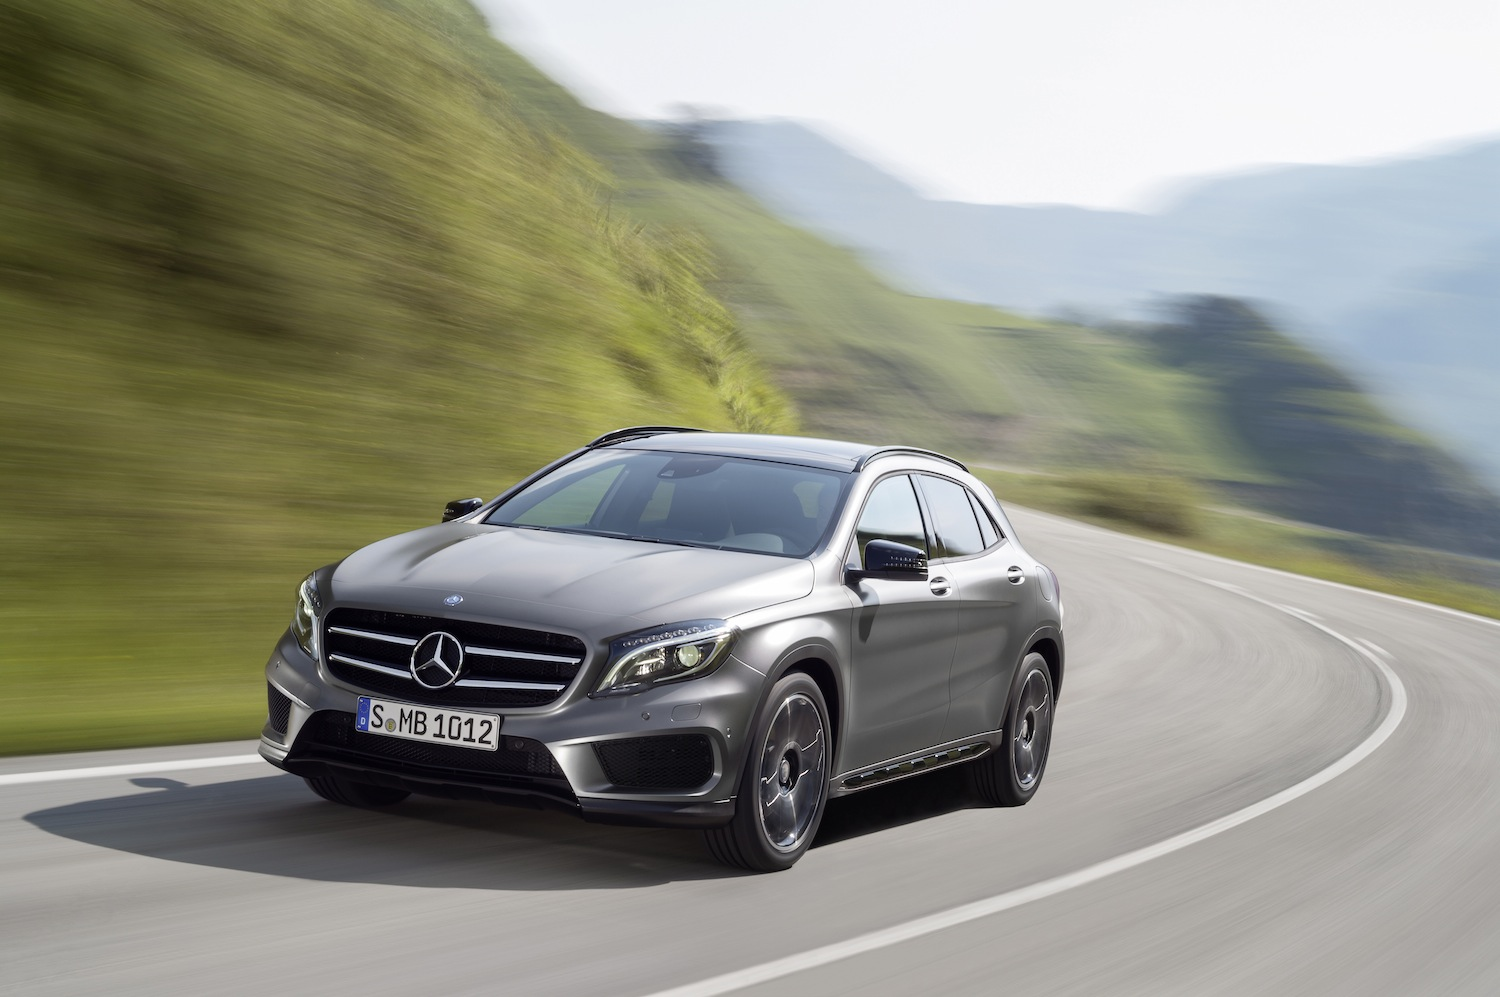 Mercedes benz gla 250 4matic x156 2013 for Mercedes benz suv gla